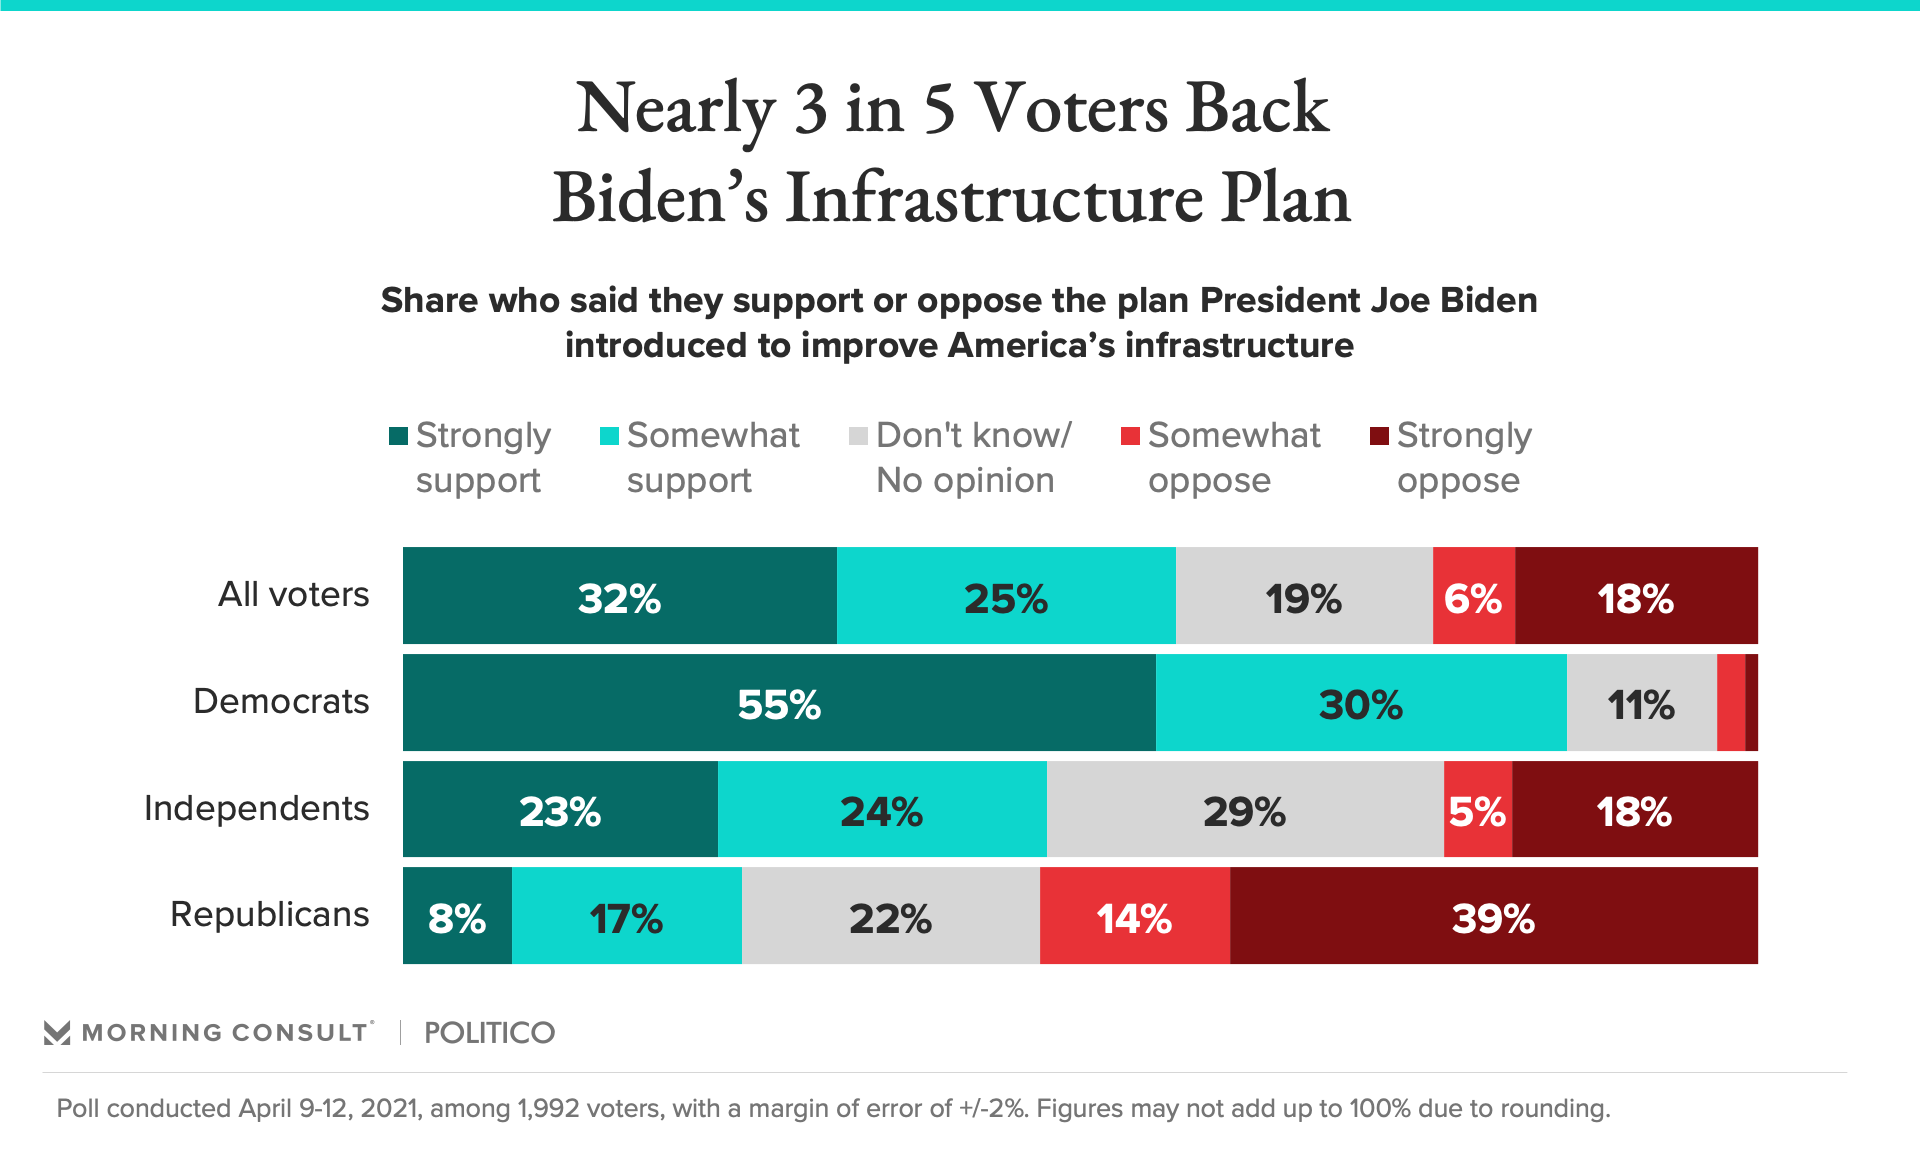 041421_Infrastructure-plan-popularity_fullwidth.png